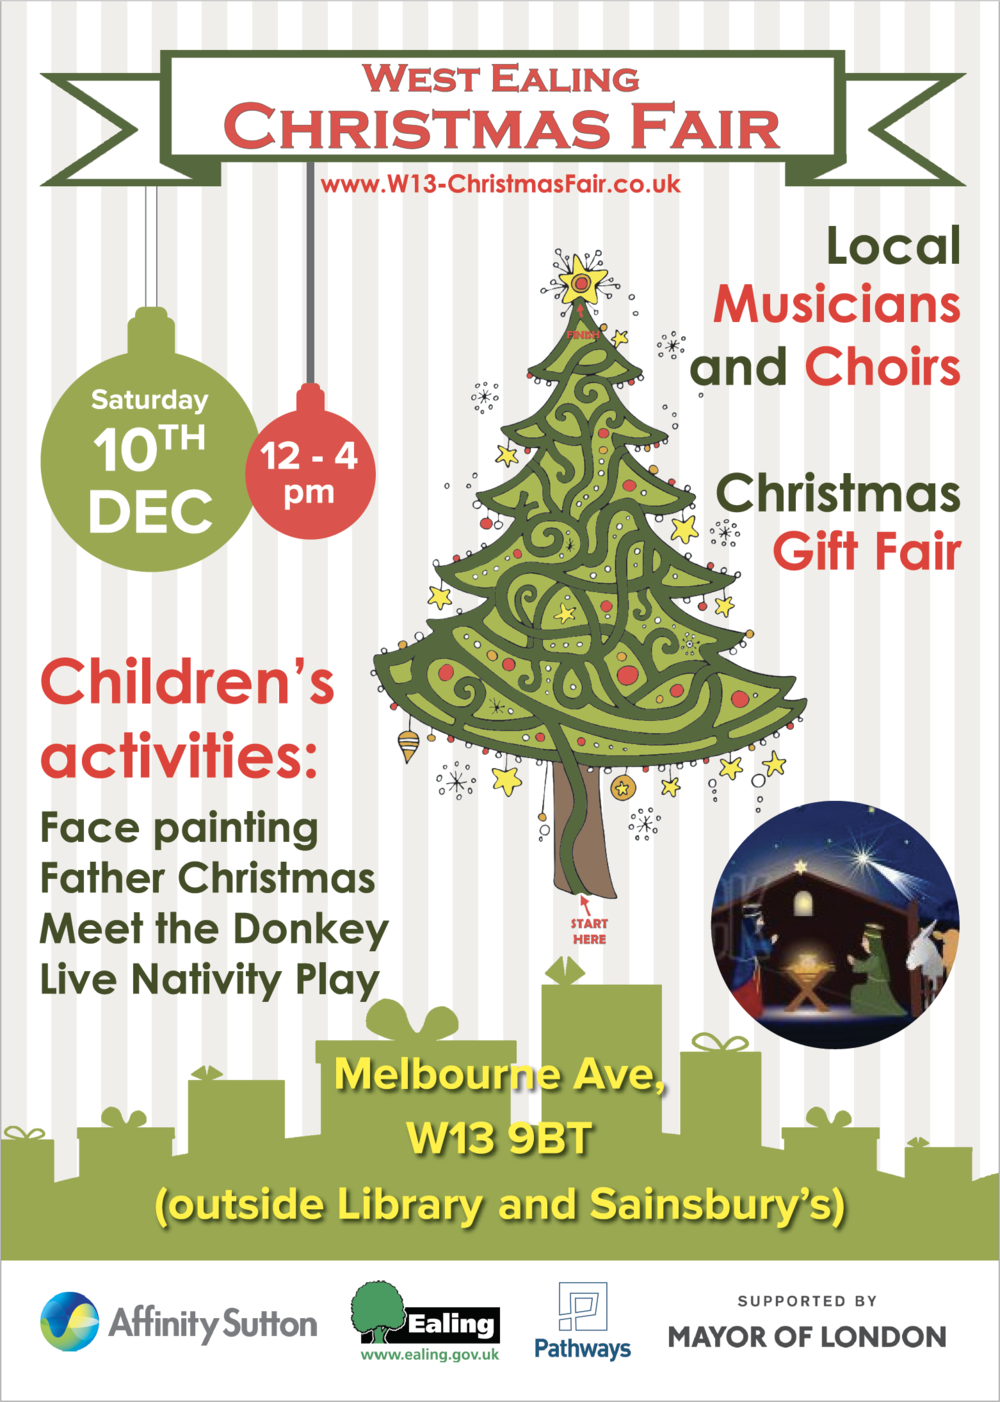 West Ealing Christmas Fair